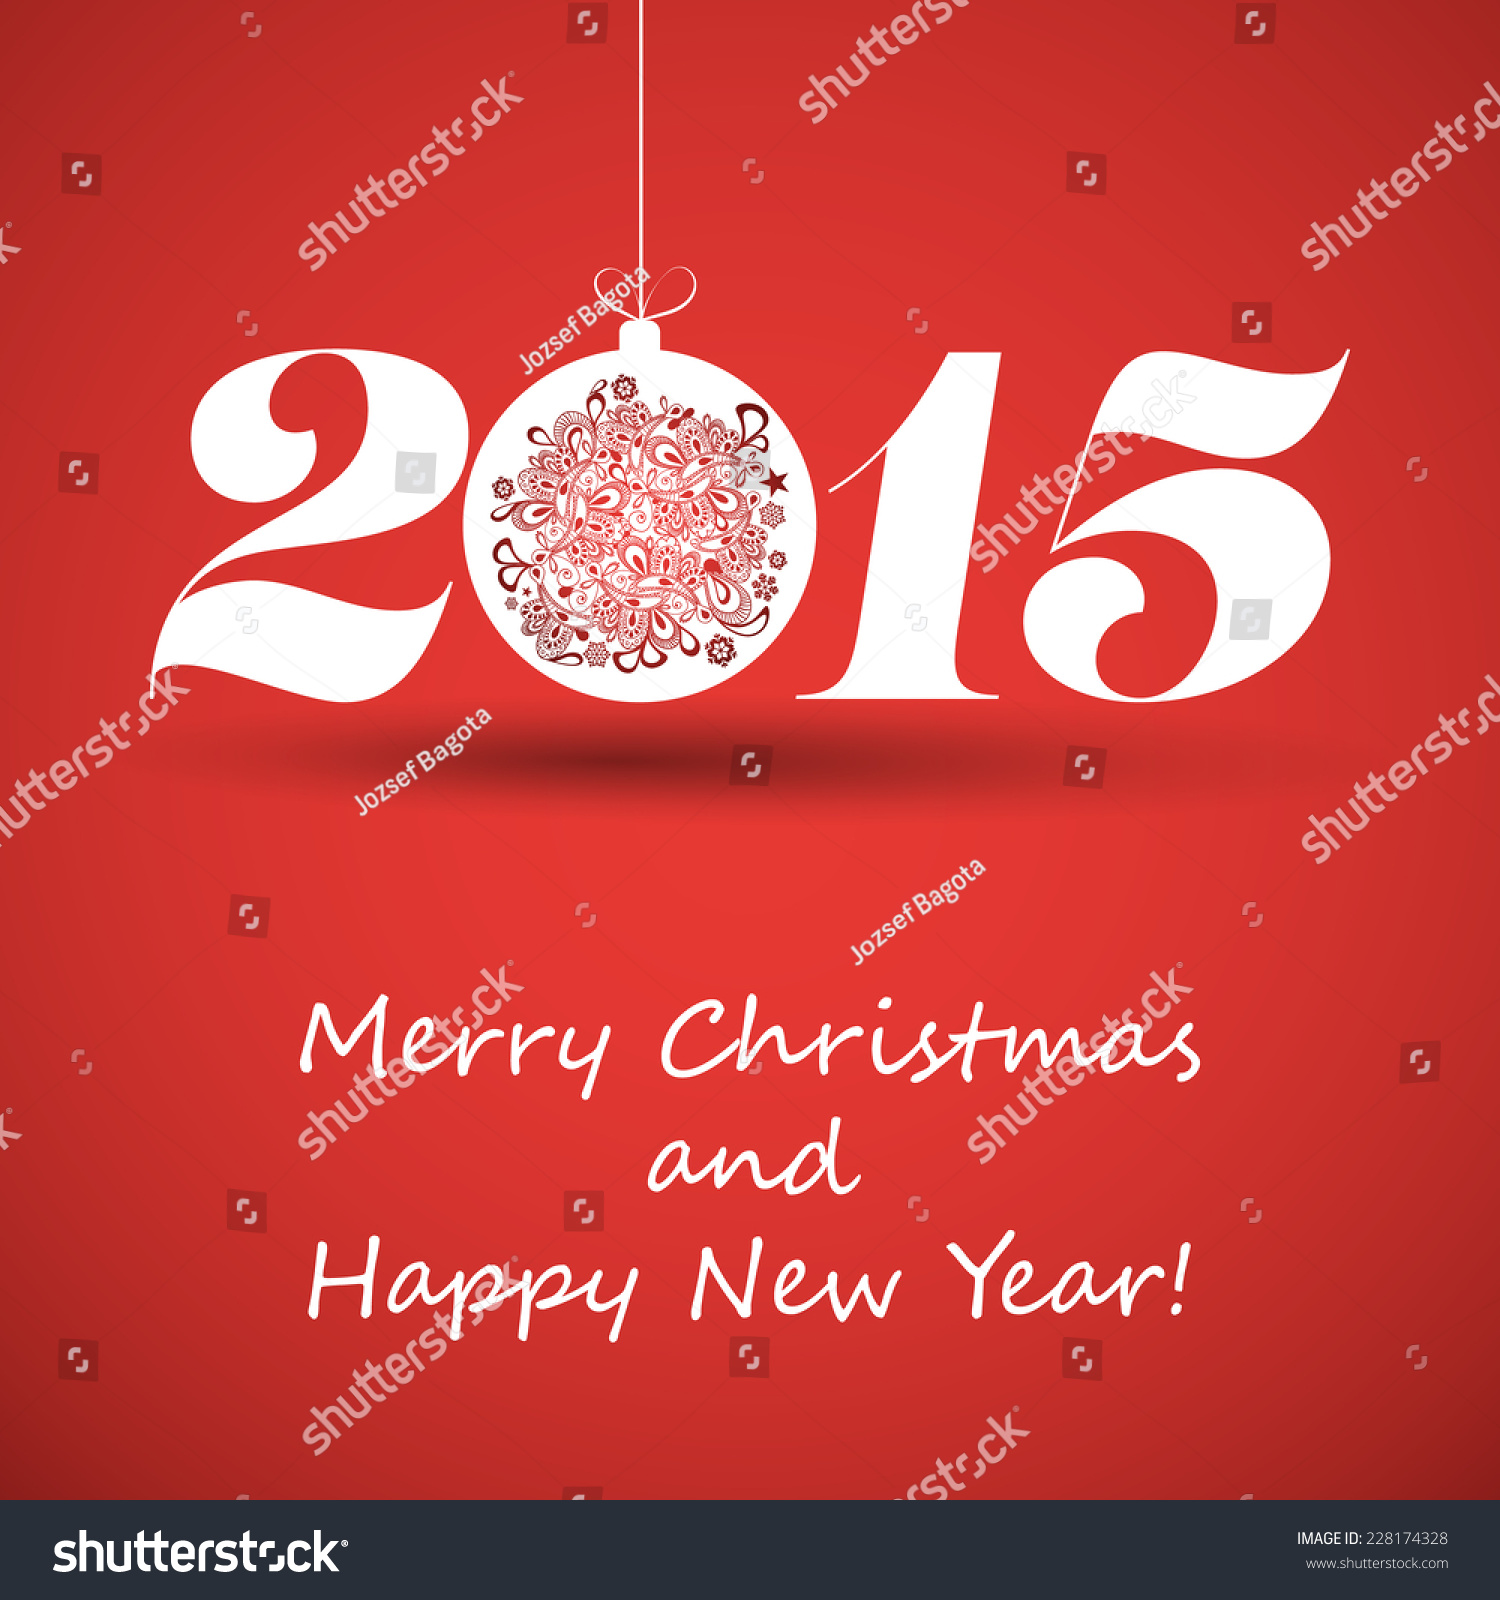 Merry Christmas Happy New Year Greeting Stock Vector Hd Royalty